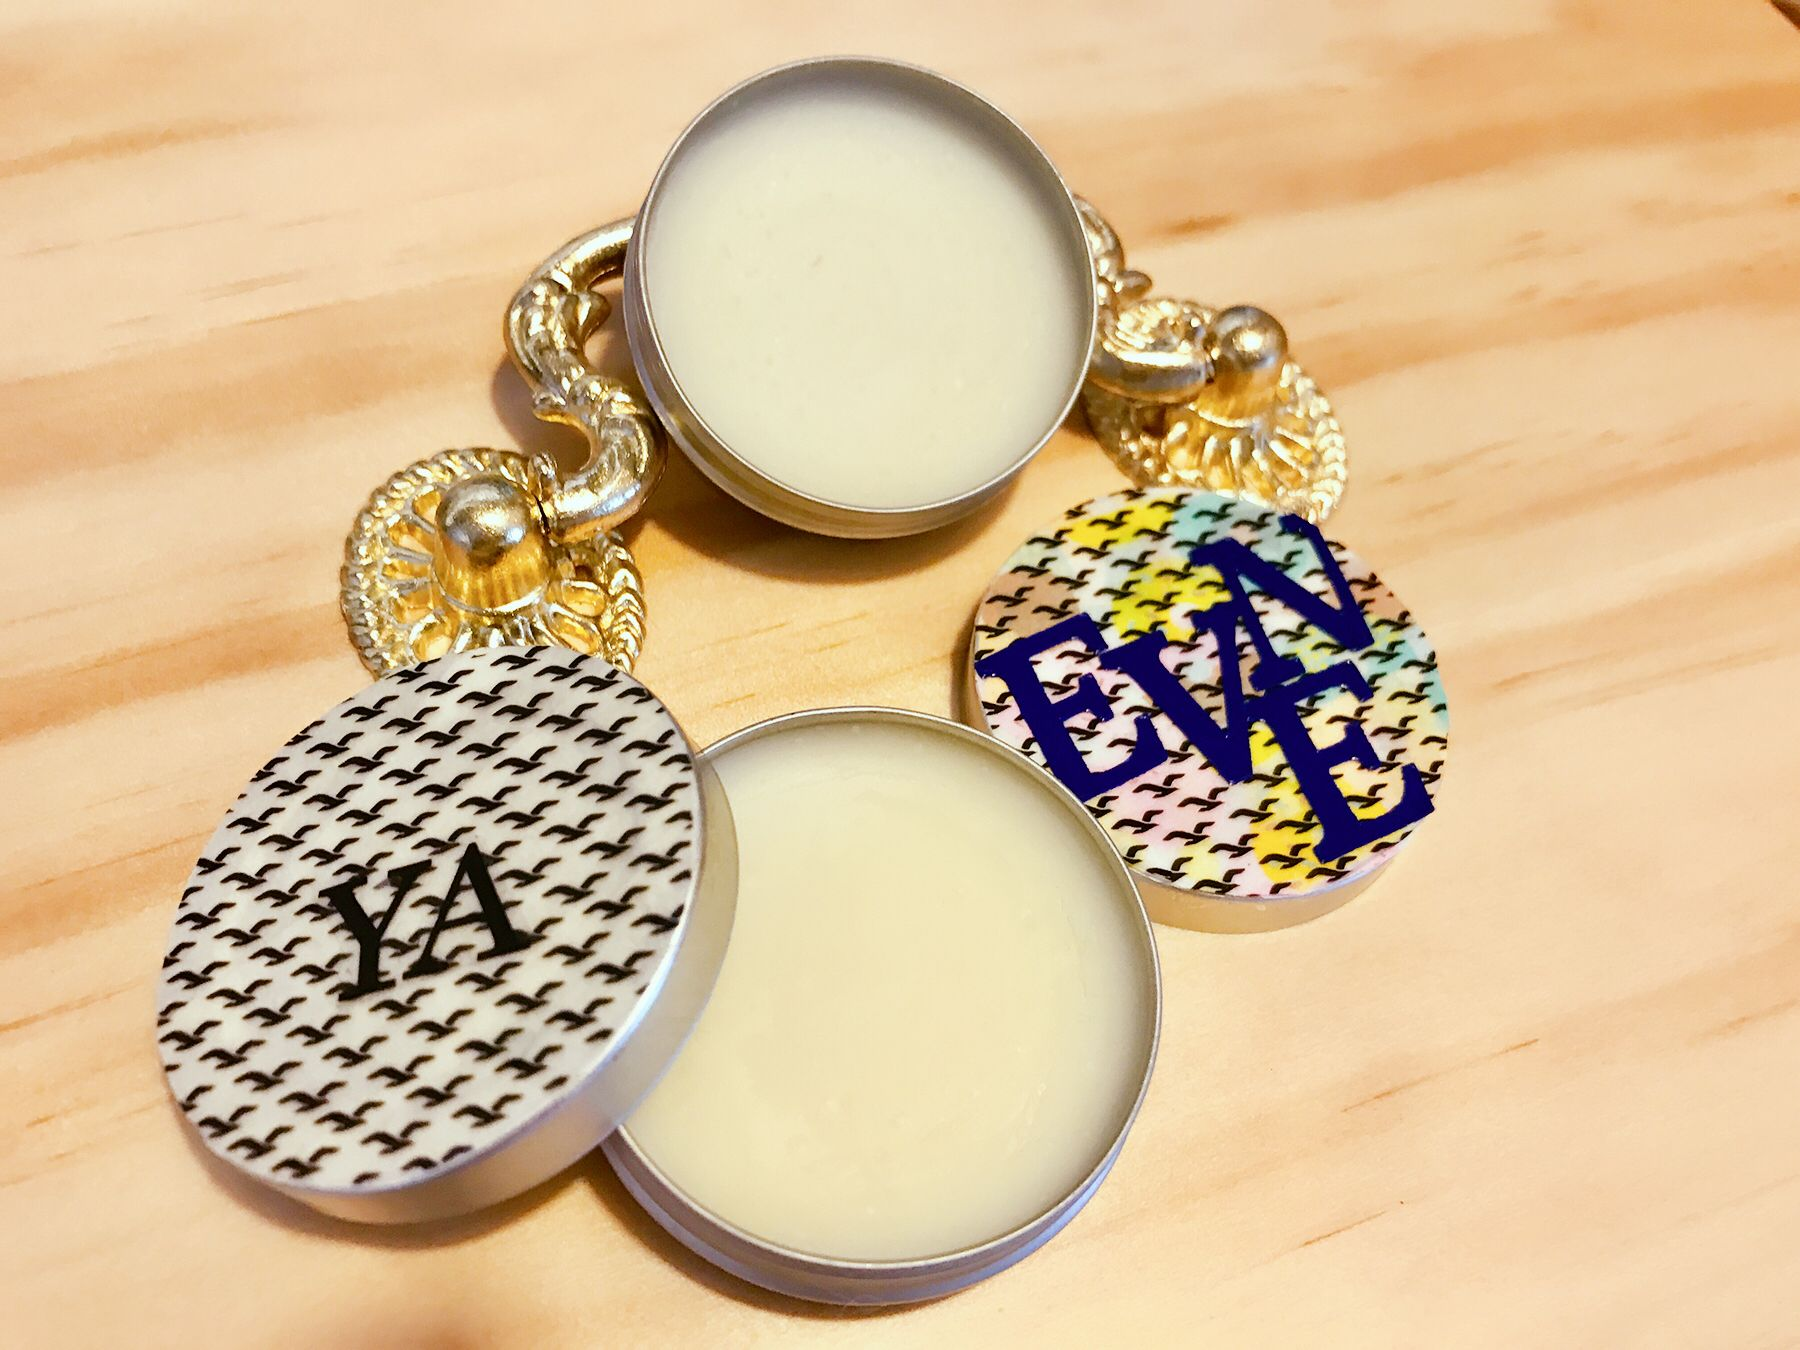 Pin by CJ on Solid Perfume(Natural)